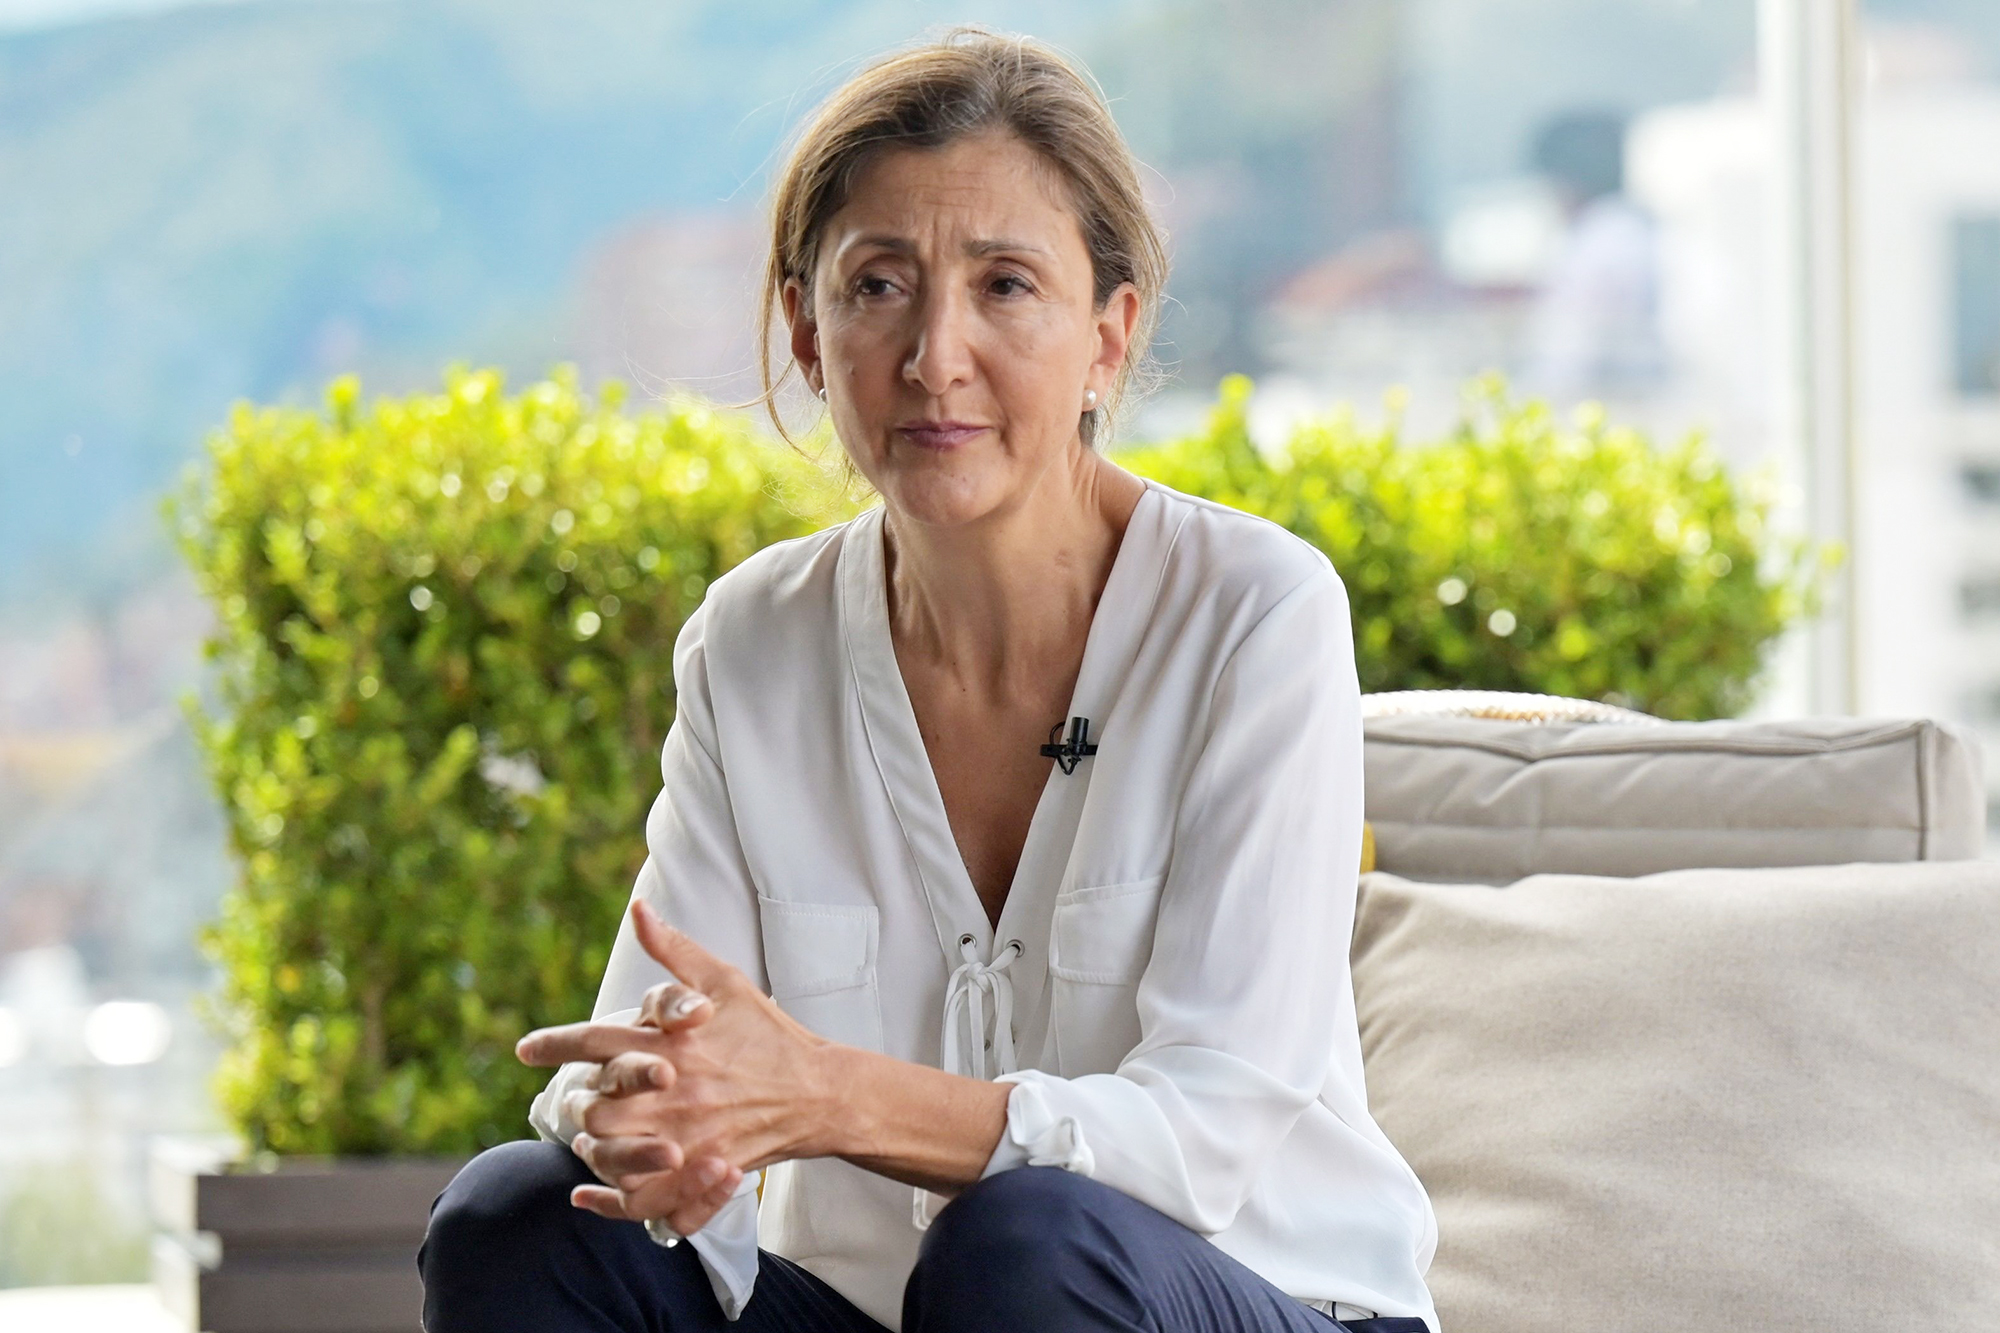 Franco-Colombian politician and former presidential candidate Ingrid Betancourt